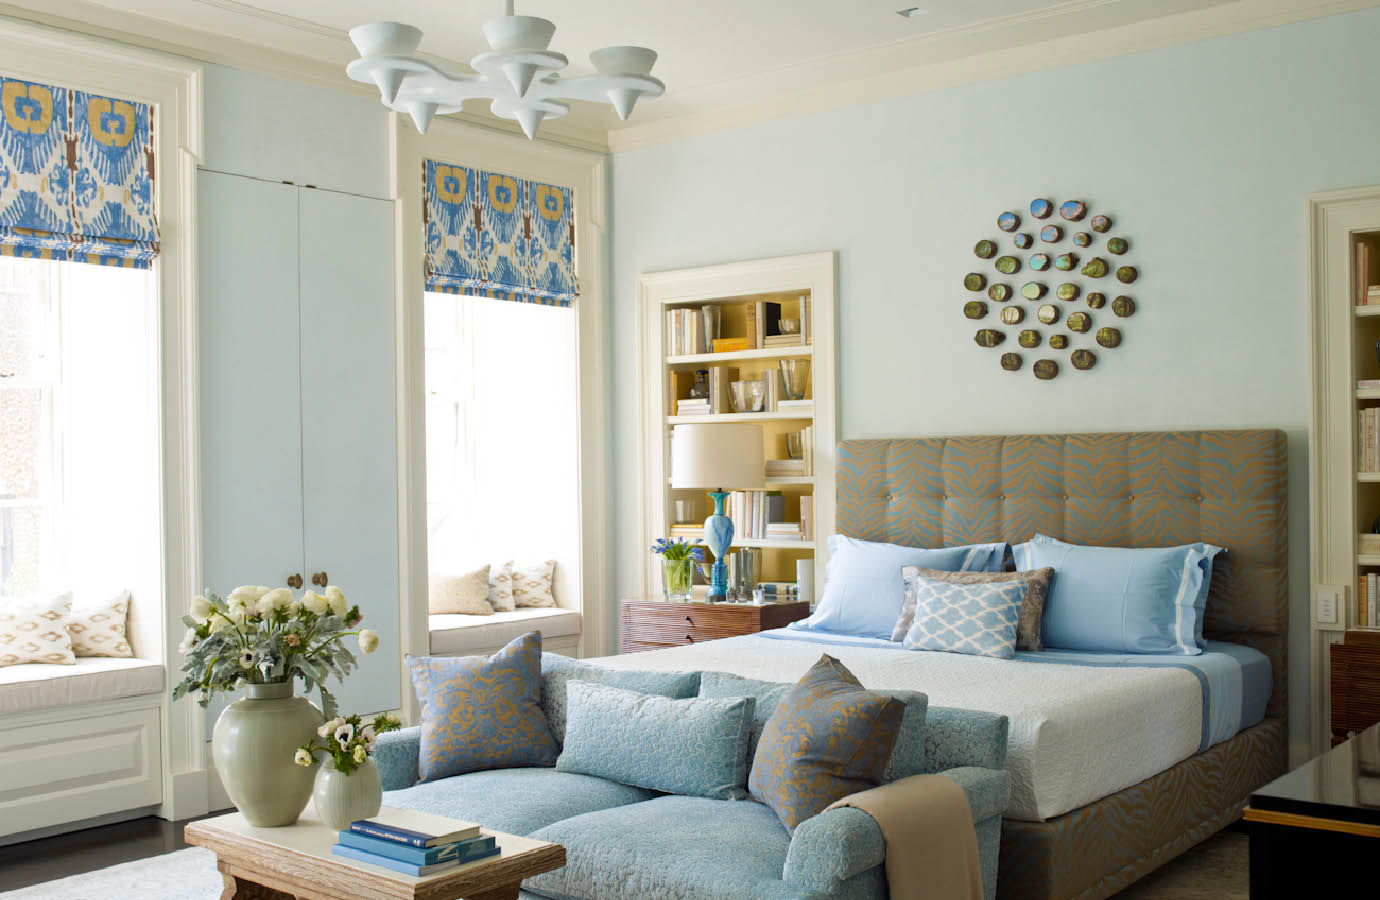 This bedroom by Steven Gambrel takes a layered approach to color.  Note the varied shades of blue, offset by sunshine yellow accents in the bookshelf and textiles.  Again, this is an easy example to imagine those accents in another color.  How would the room feel different with accents in navy, green, or coral?